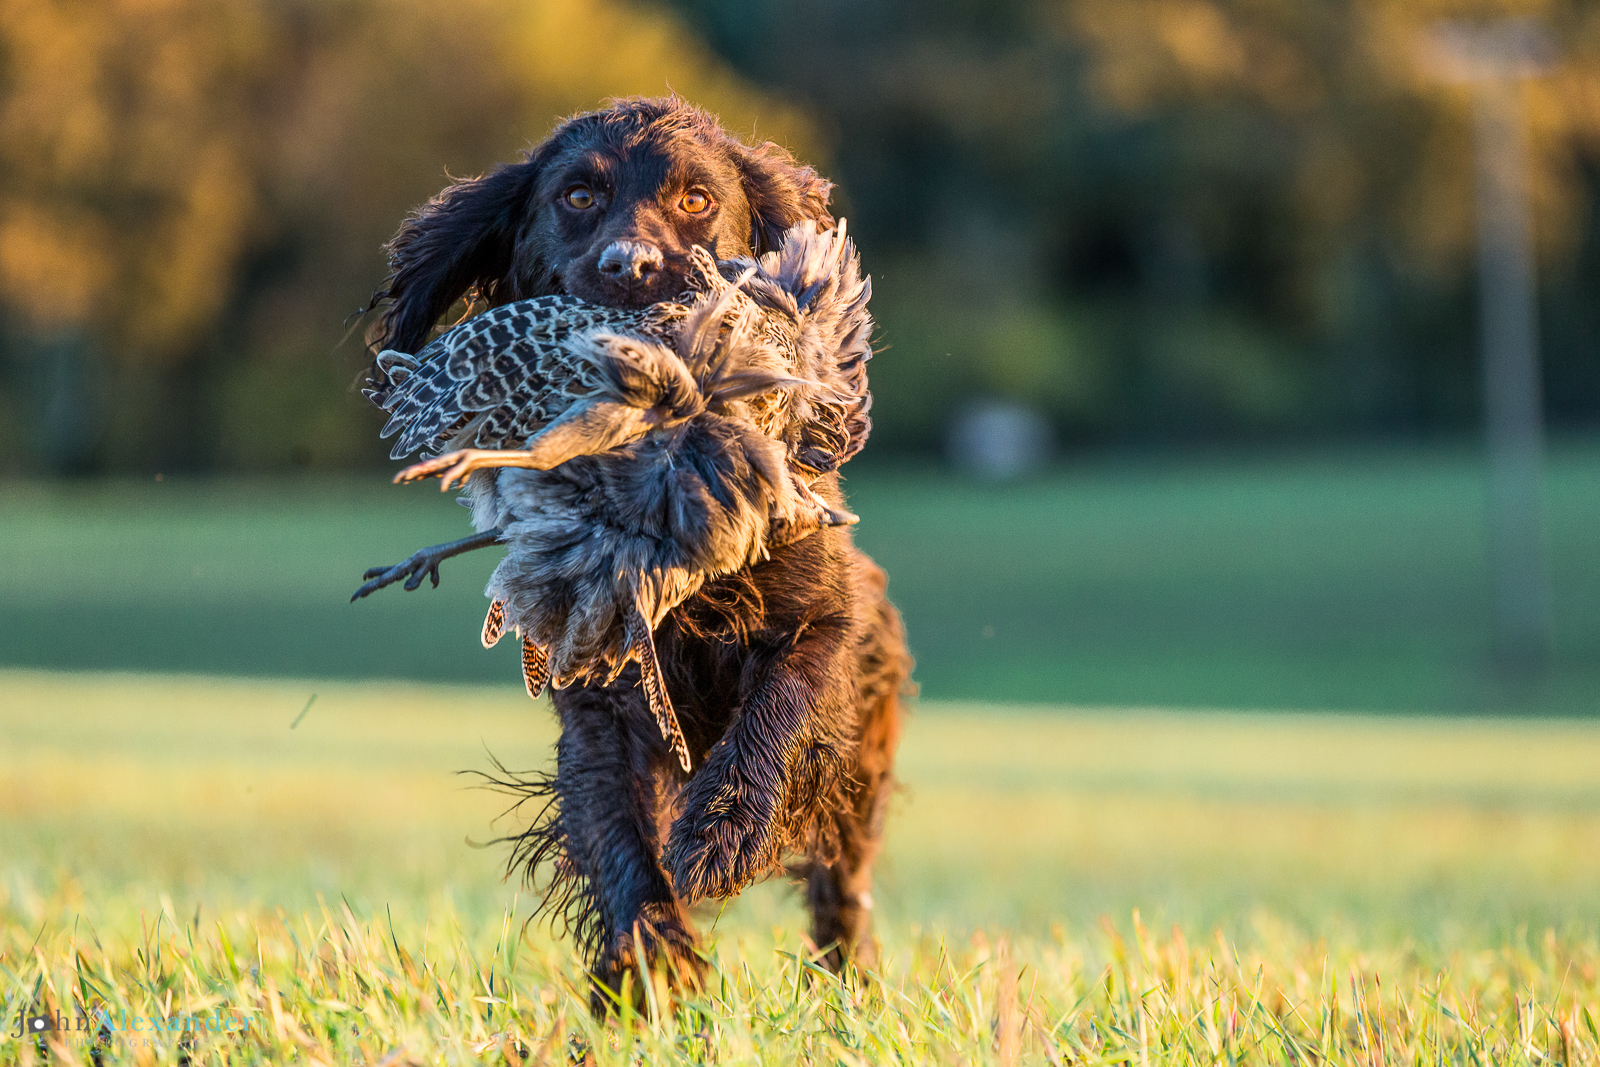 spaniel retrieving pheasant in low afternoon light